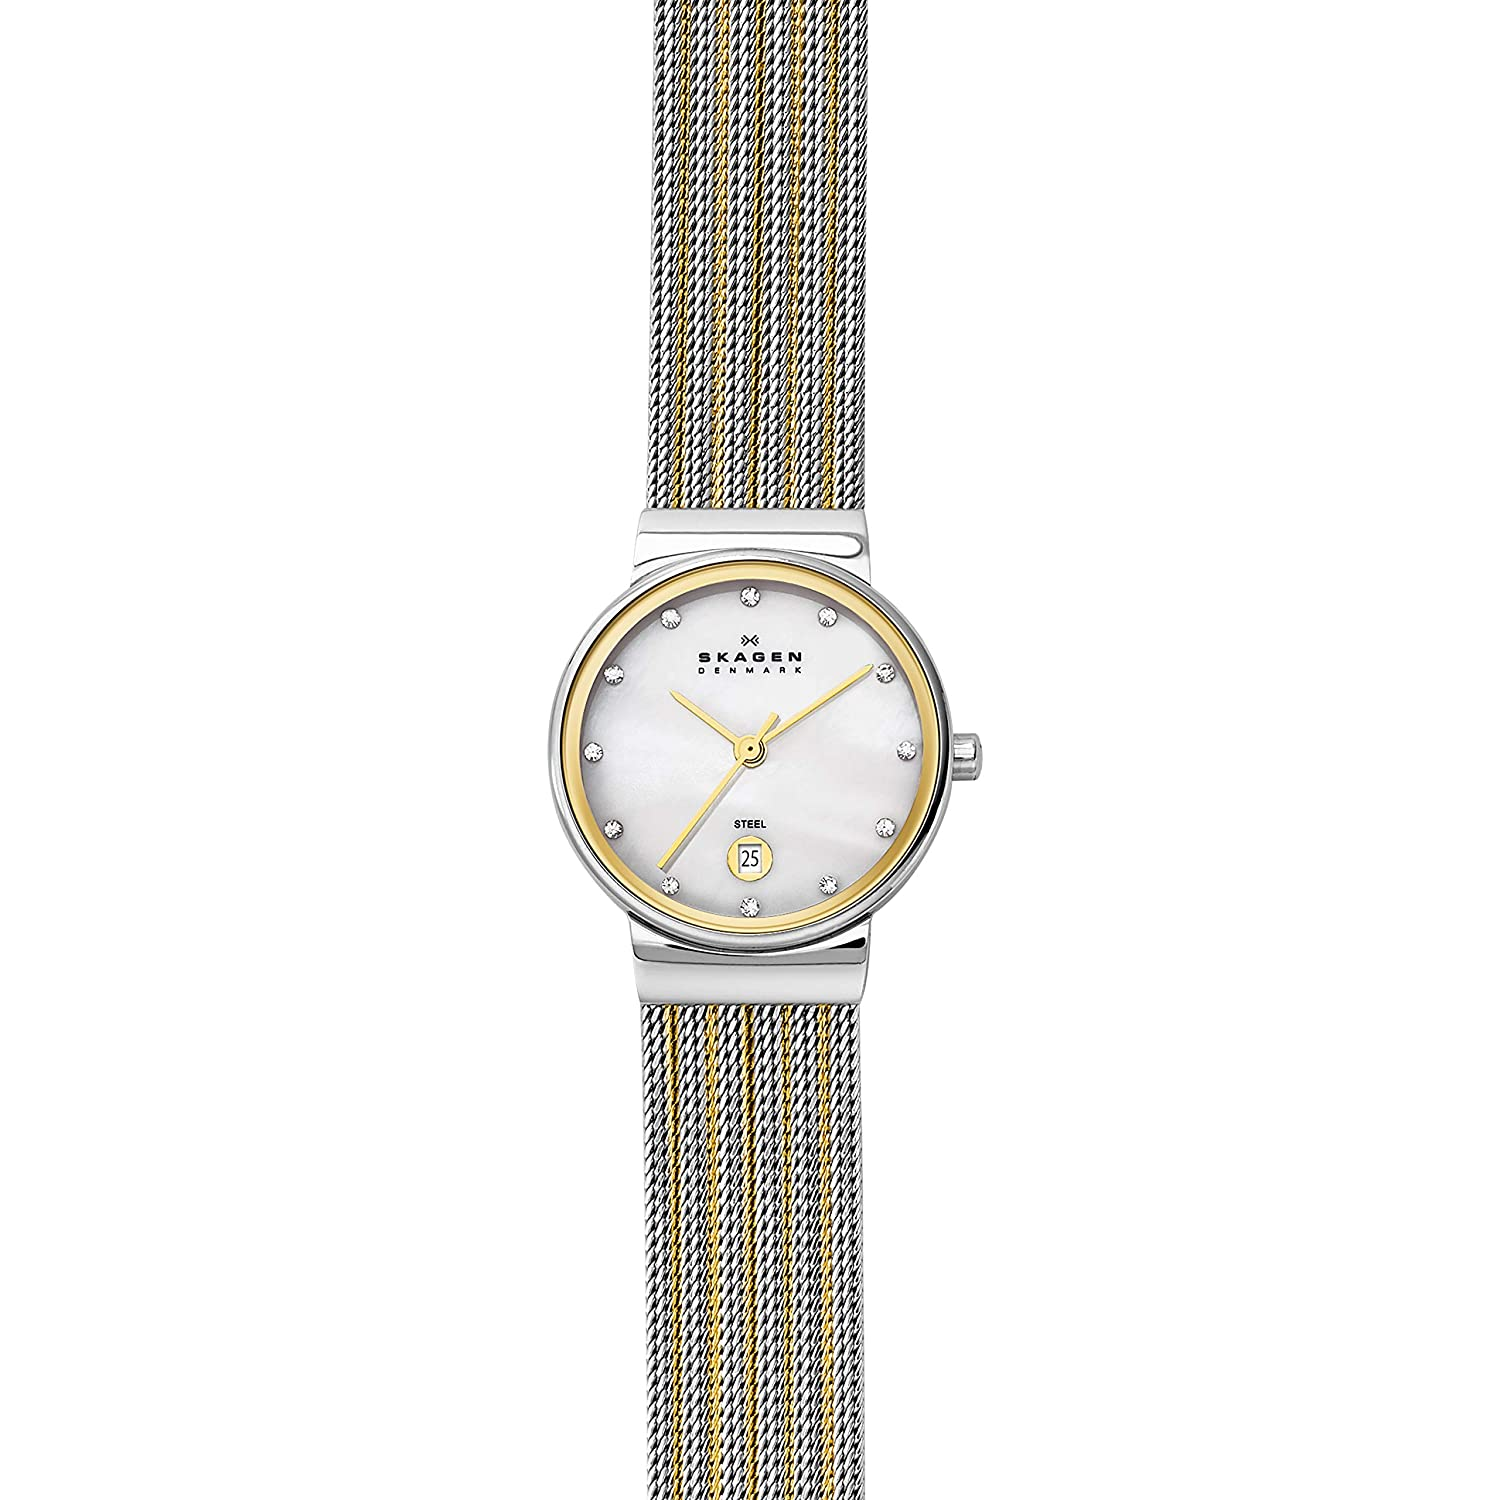 98ca6a5d1ae Amazon.com: Skagen Women's Ancher Quartz Two-Tone Stainless Steel Mesh  Dress Watch, Color: Silver and Gold-Tone (Model: 355SSGS): Skagen: Watches